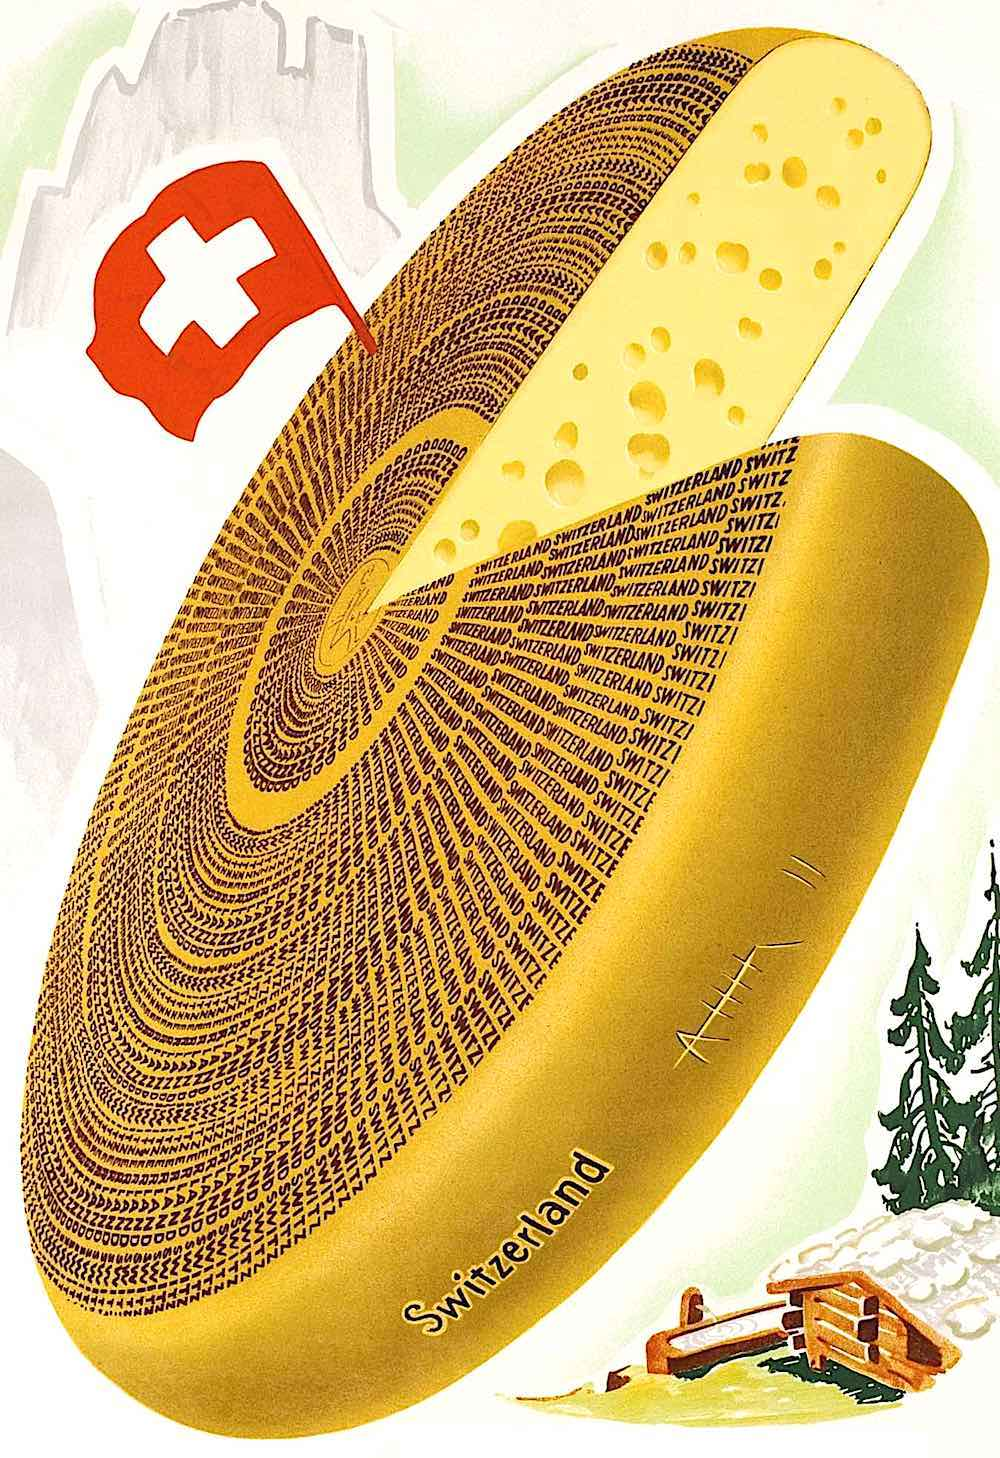 a 1948 poster of a giant wheel of cheese, Switzerland